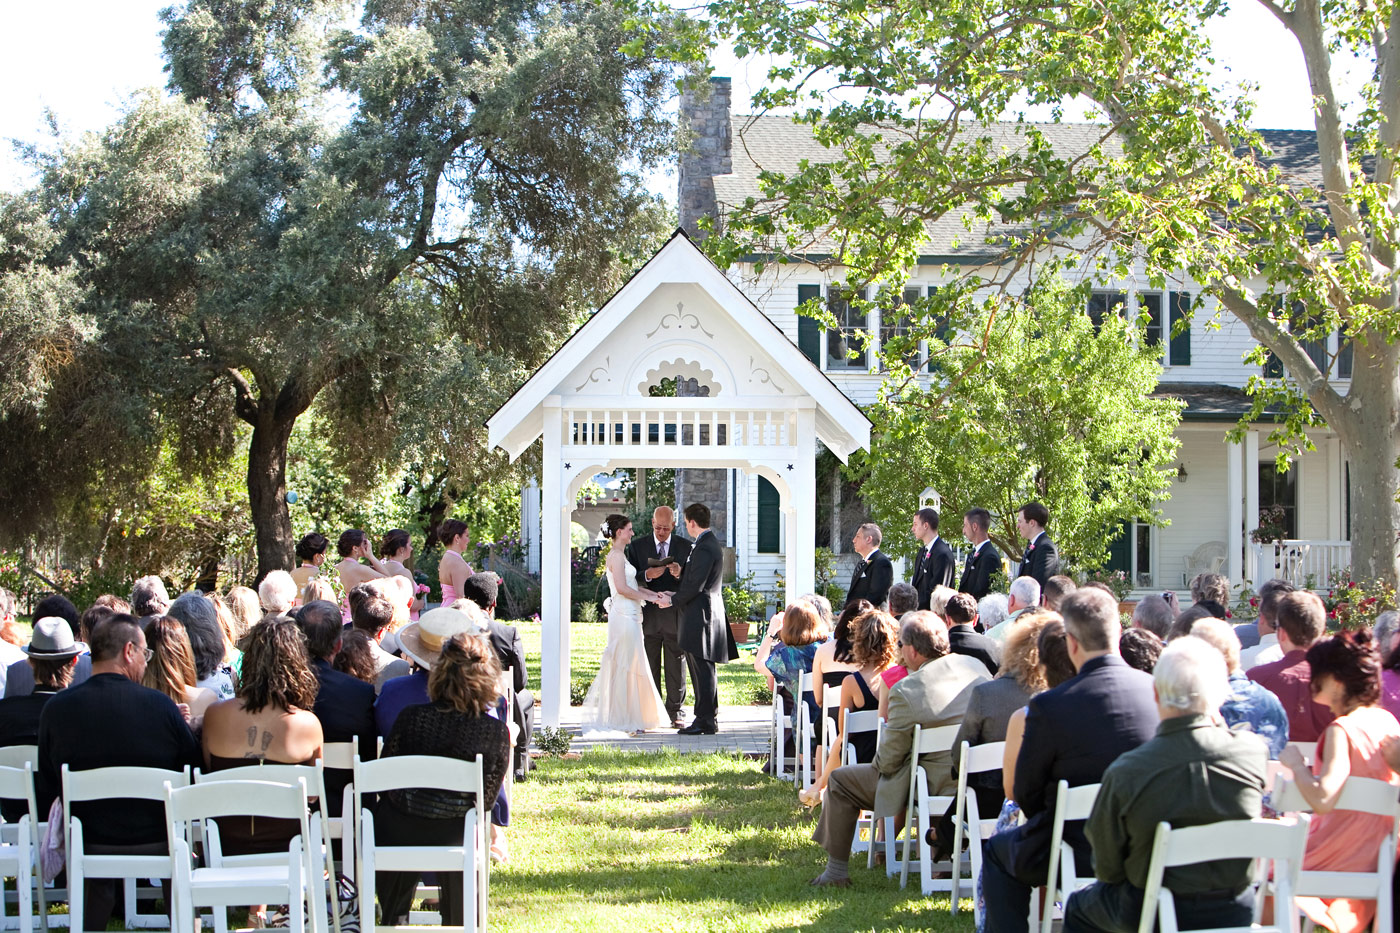 Home is Where the Heart Is - A Real Wedding Story